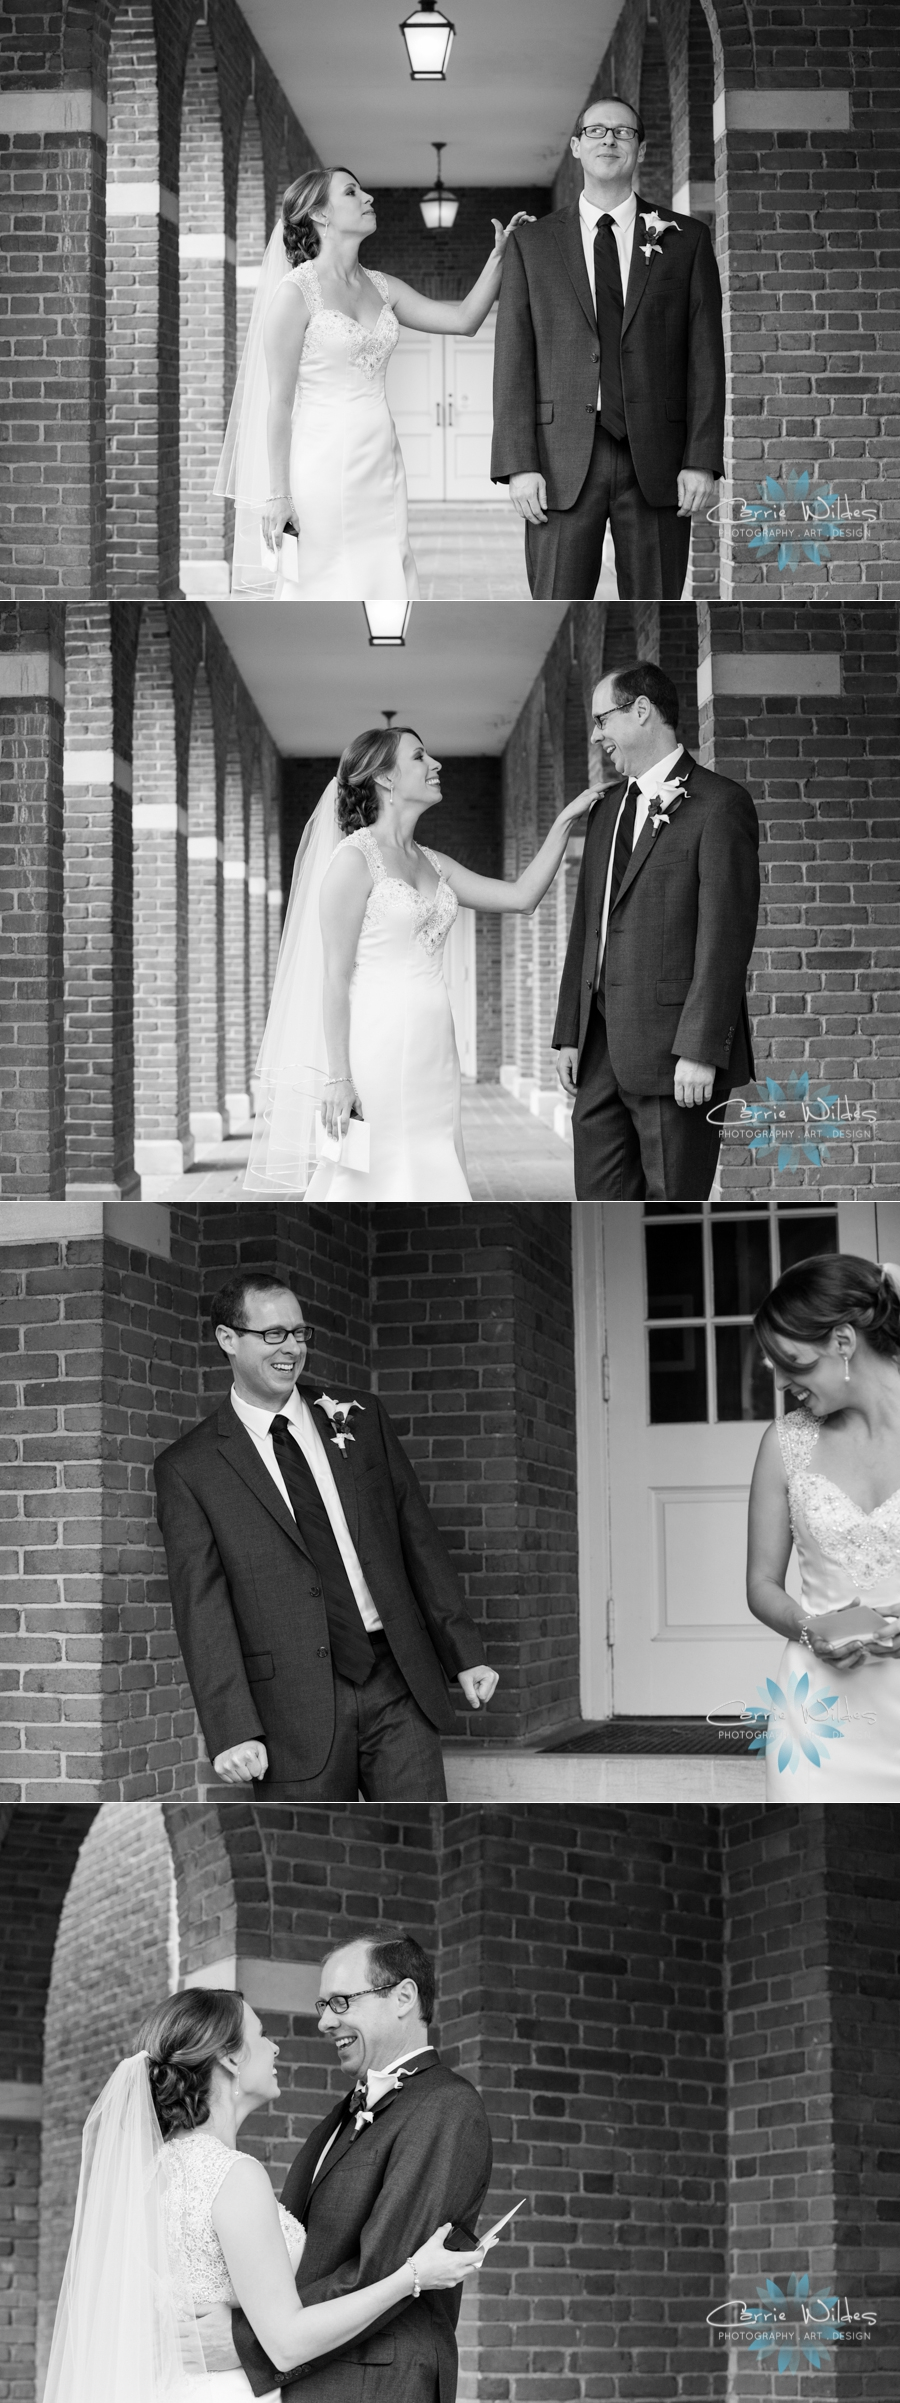 1_14_17 Jessica and Adam Samford University Wedding_0009.jpg